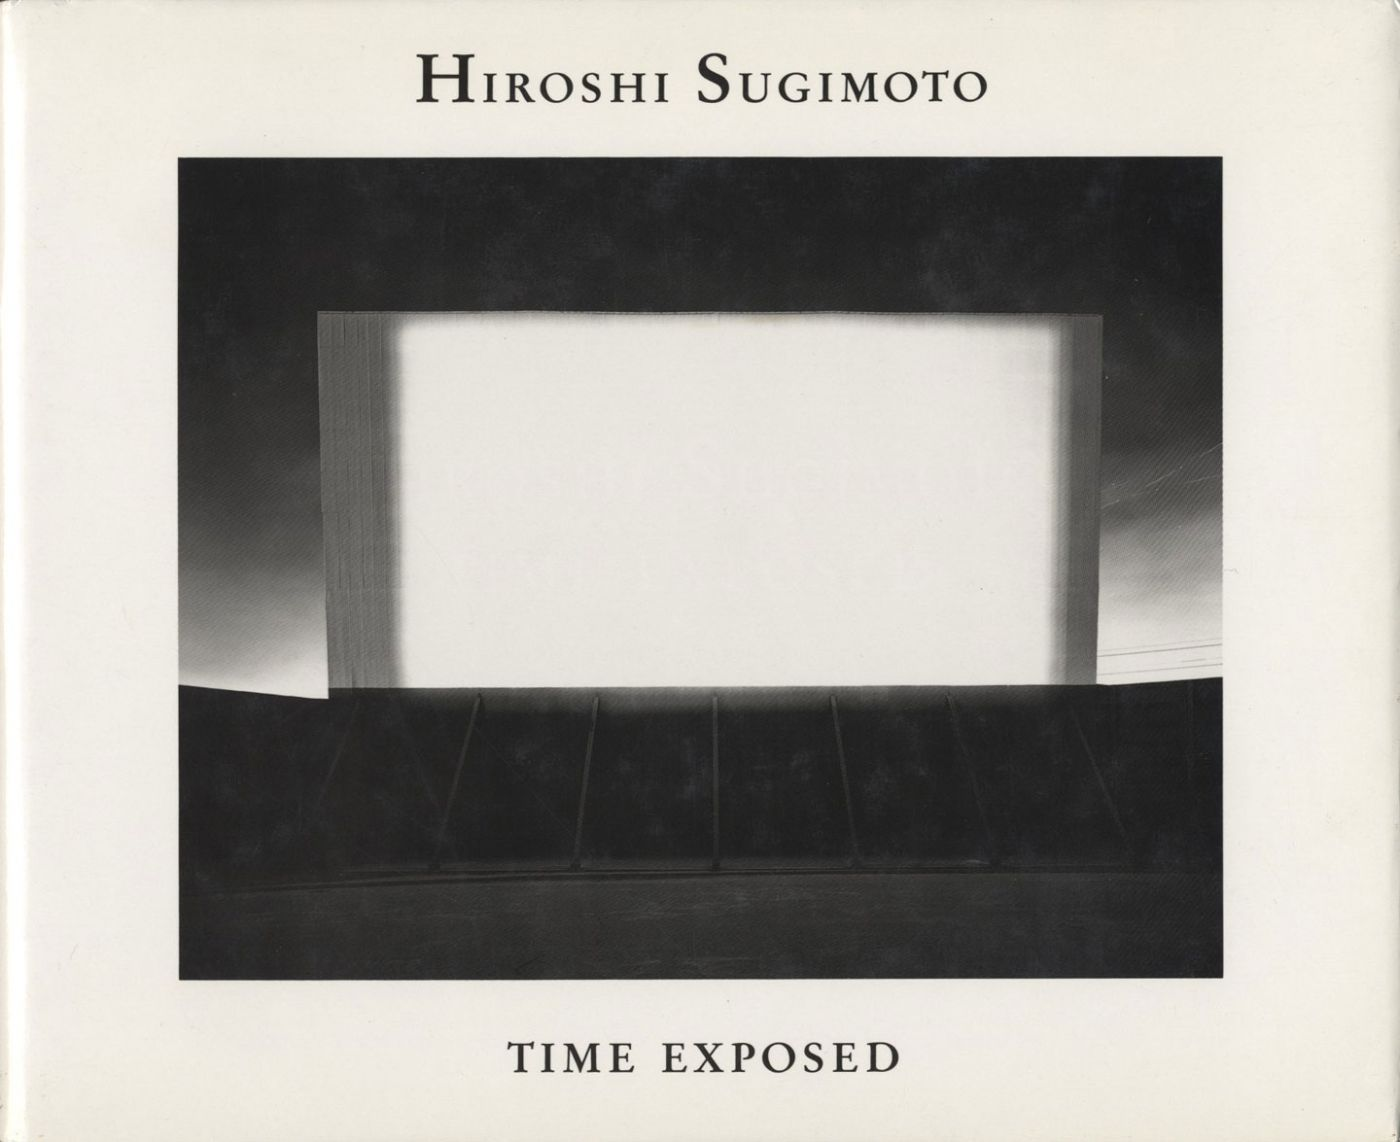 Hiroshi Sugimoto: Time Exposed (Edition Hansjörg Mayer)